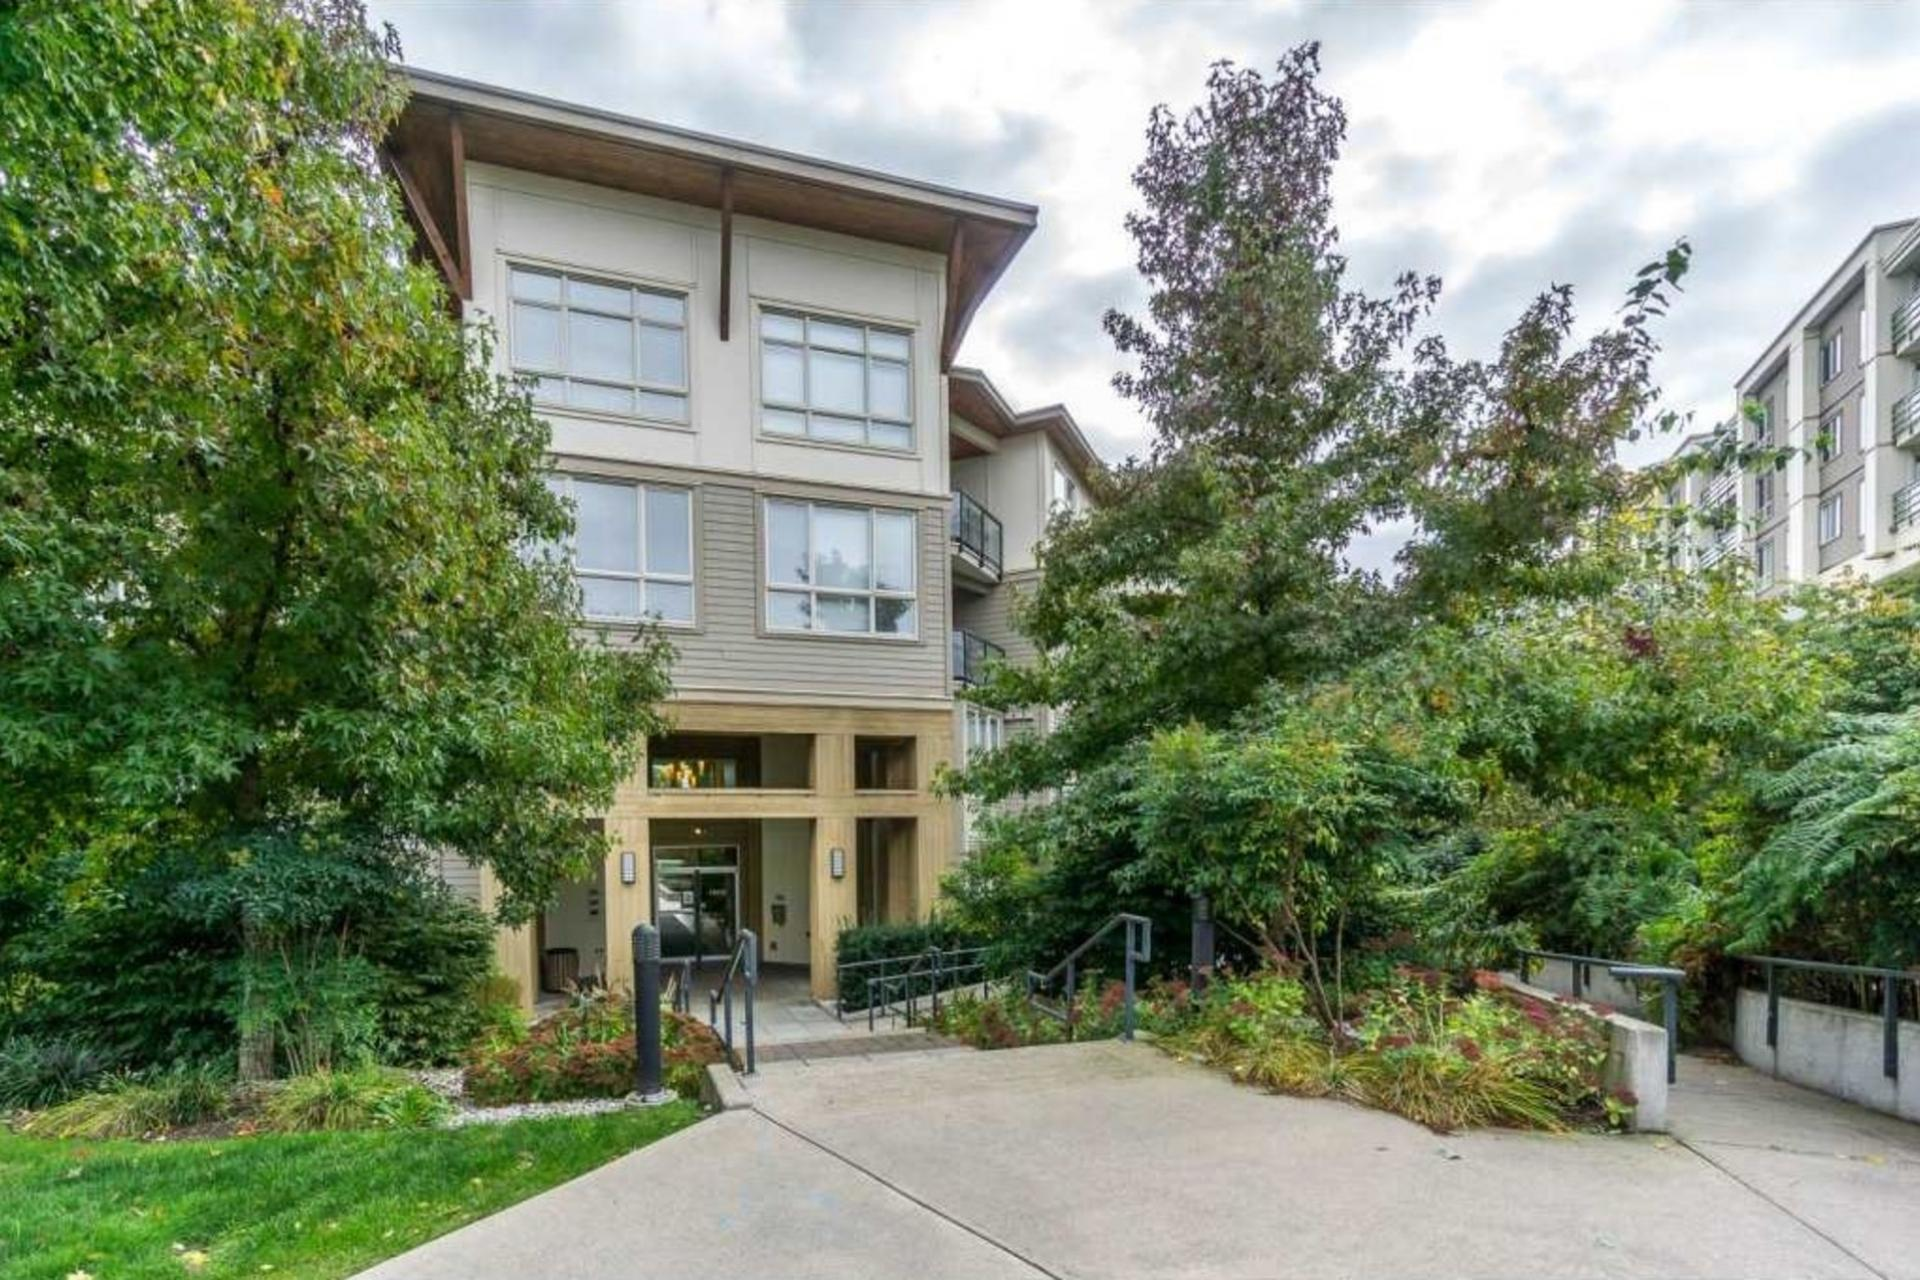 223 - 15918 26 Avenue, Grandview Surrey, South Surrey White Rock